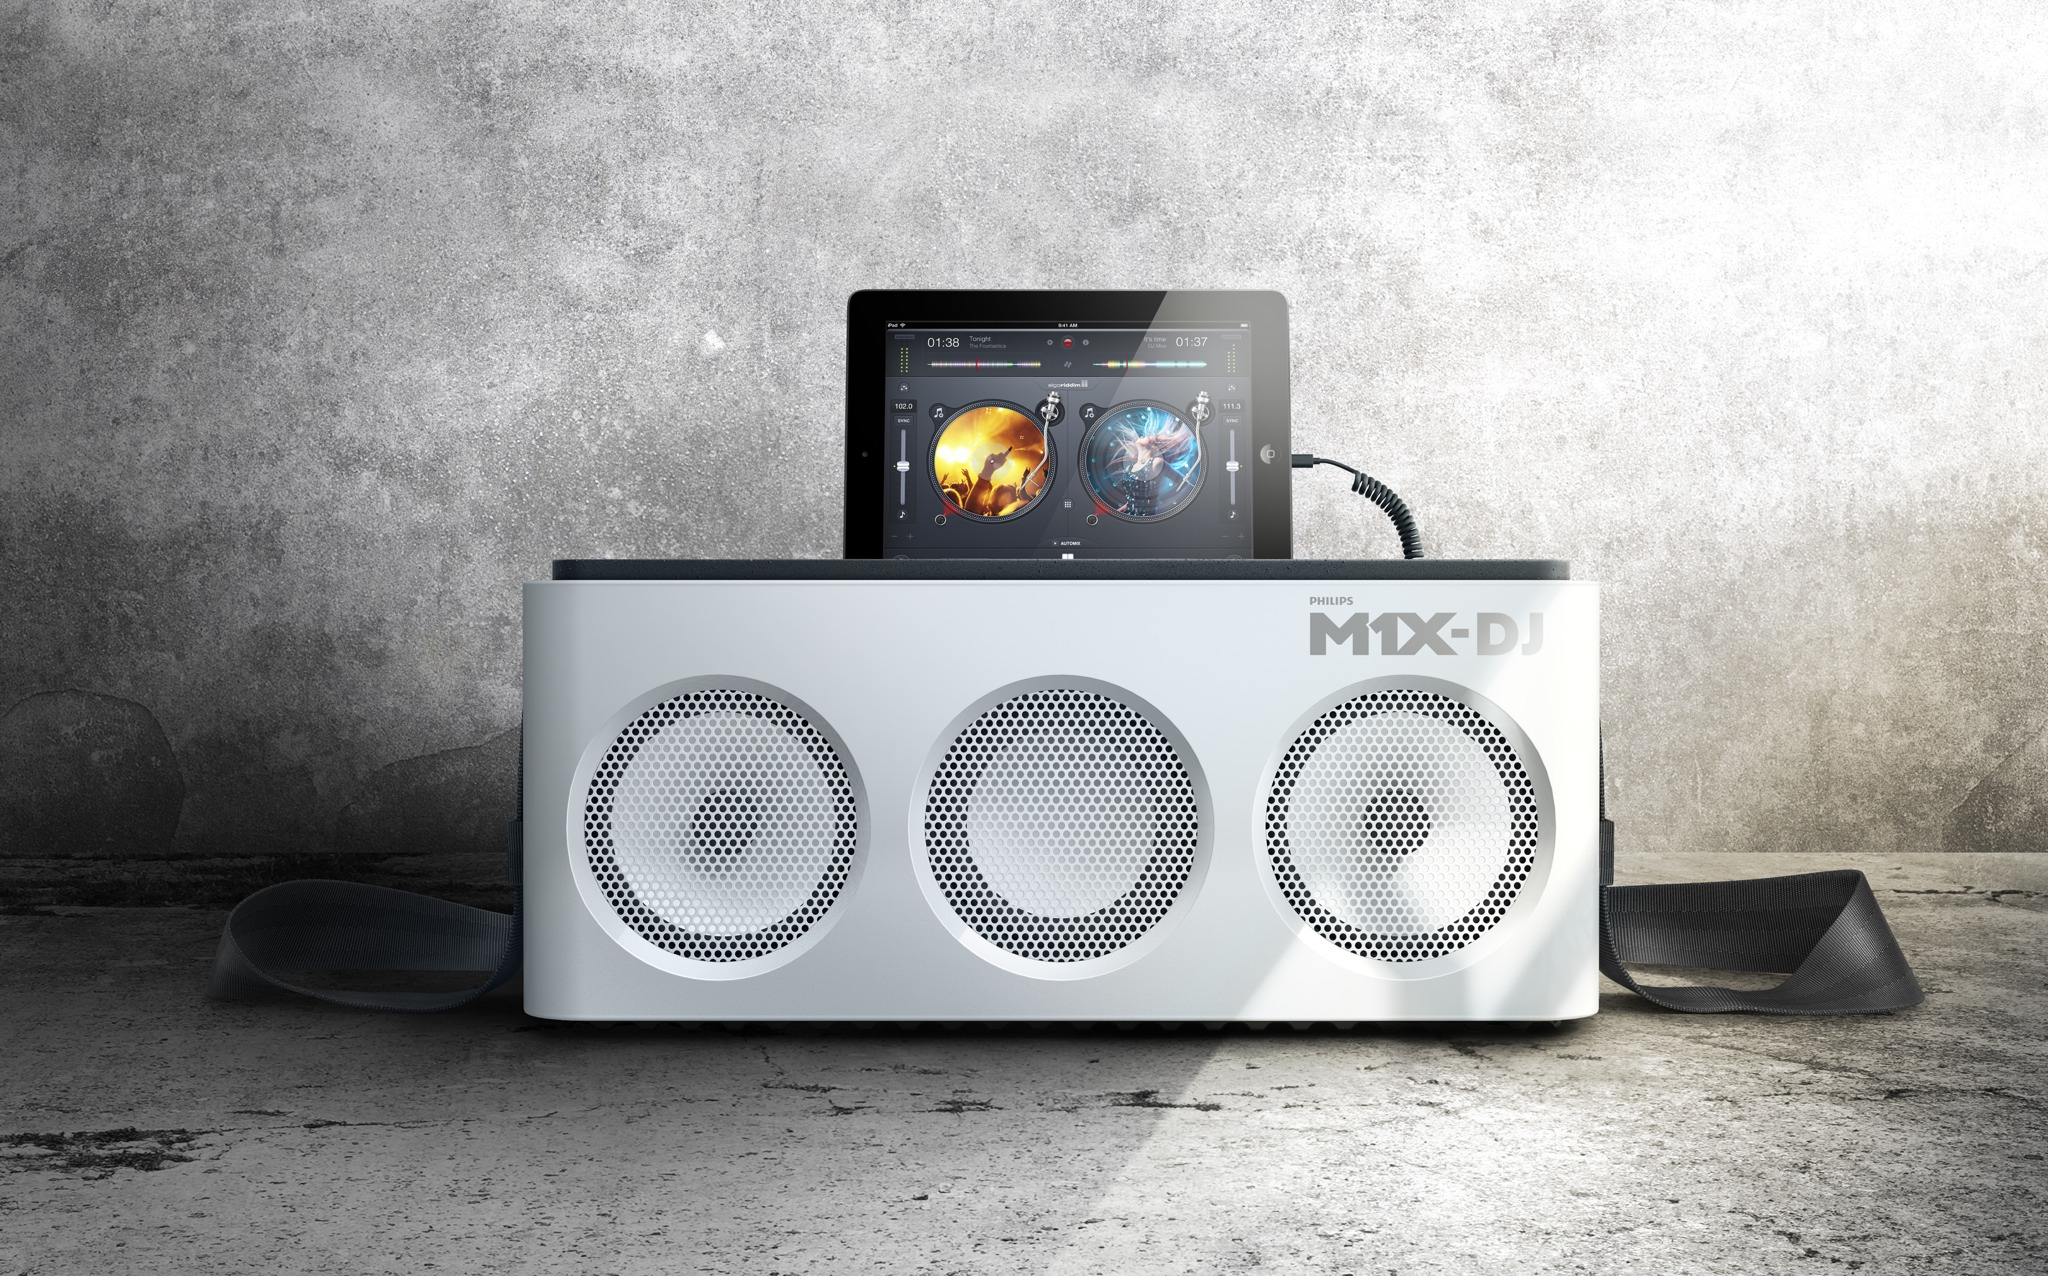 Philips M1X-DJ (front with background)